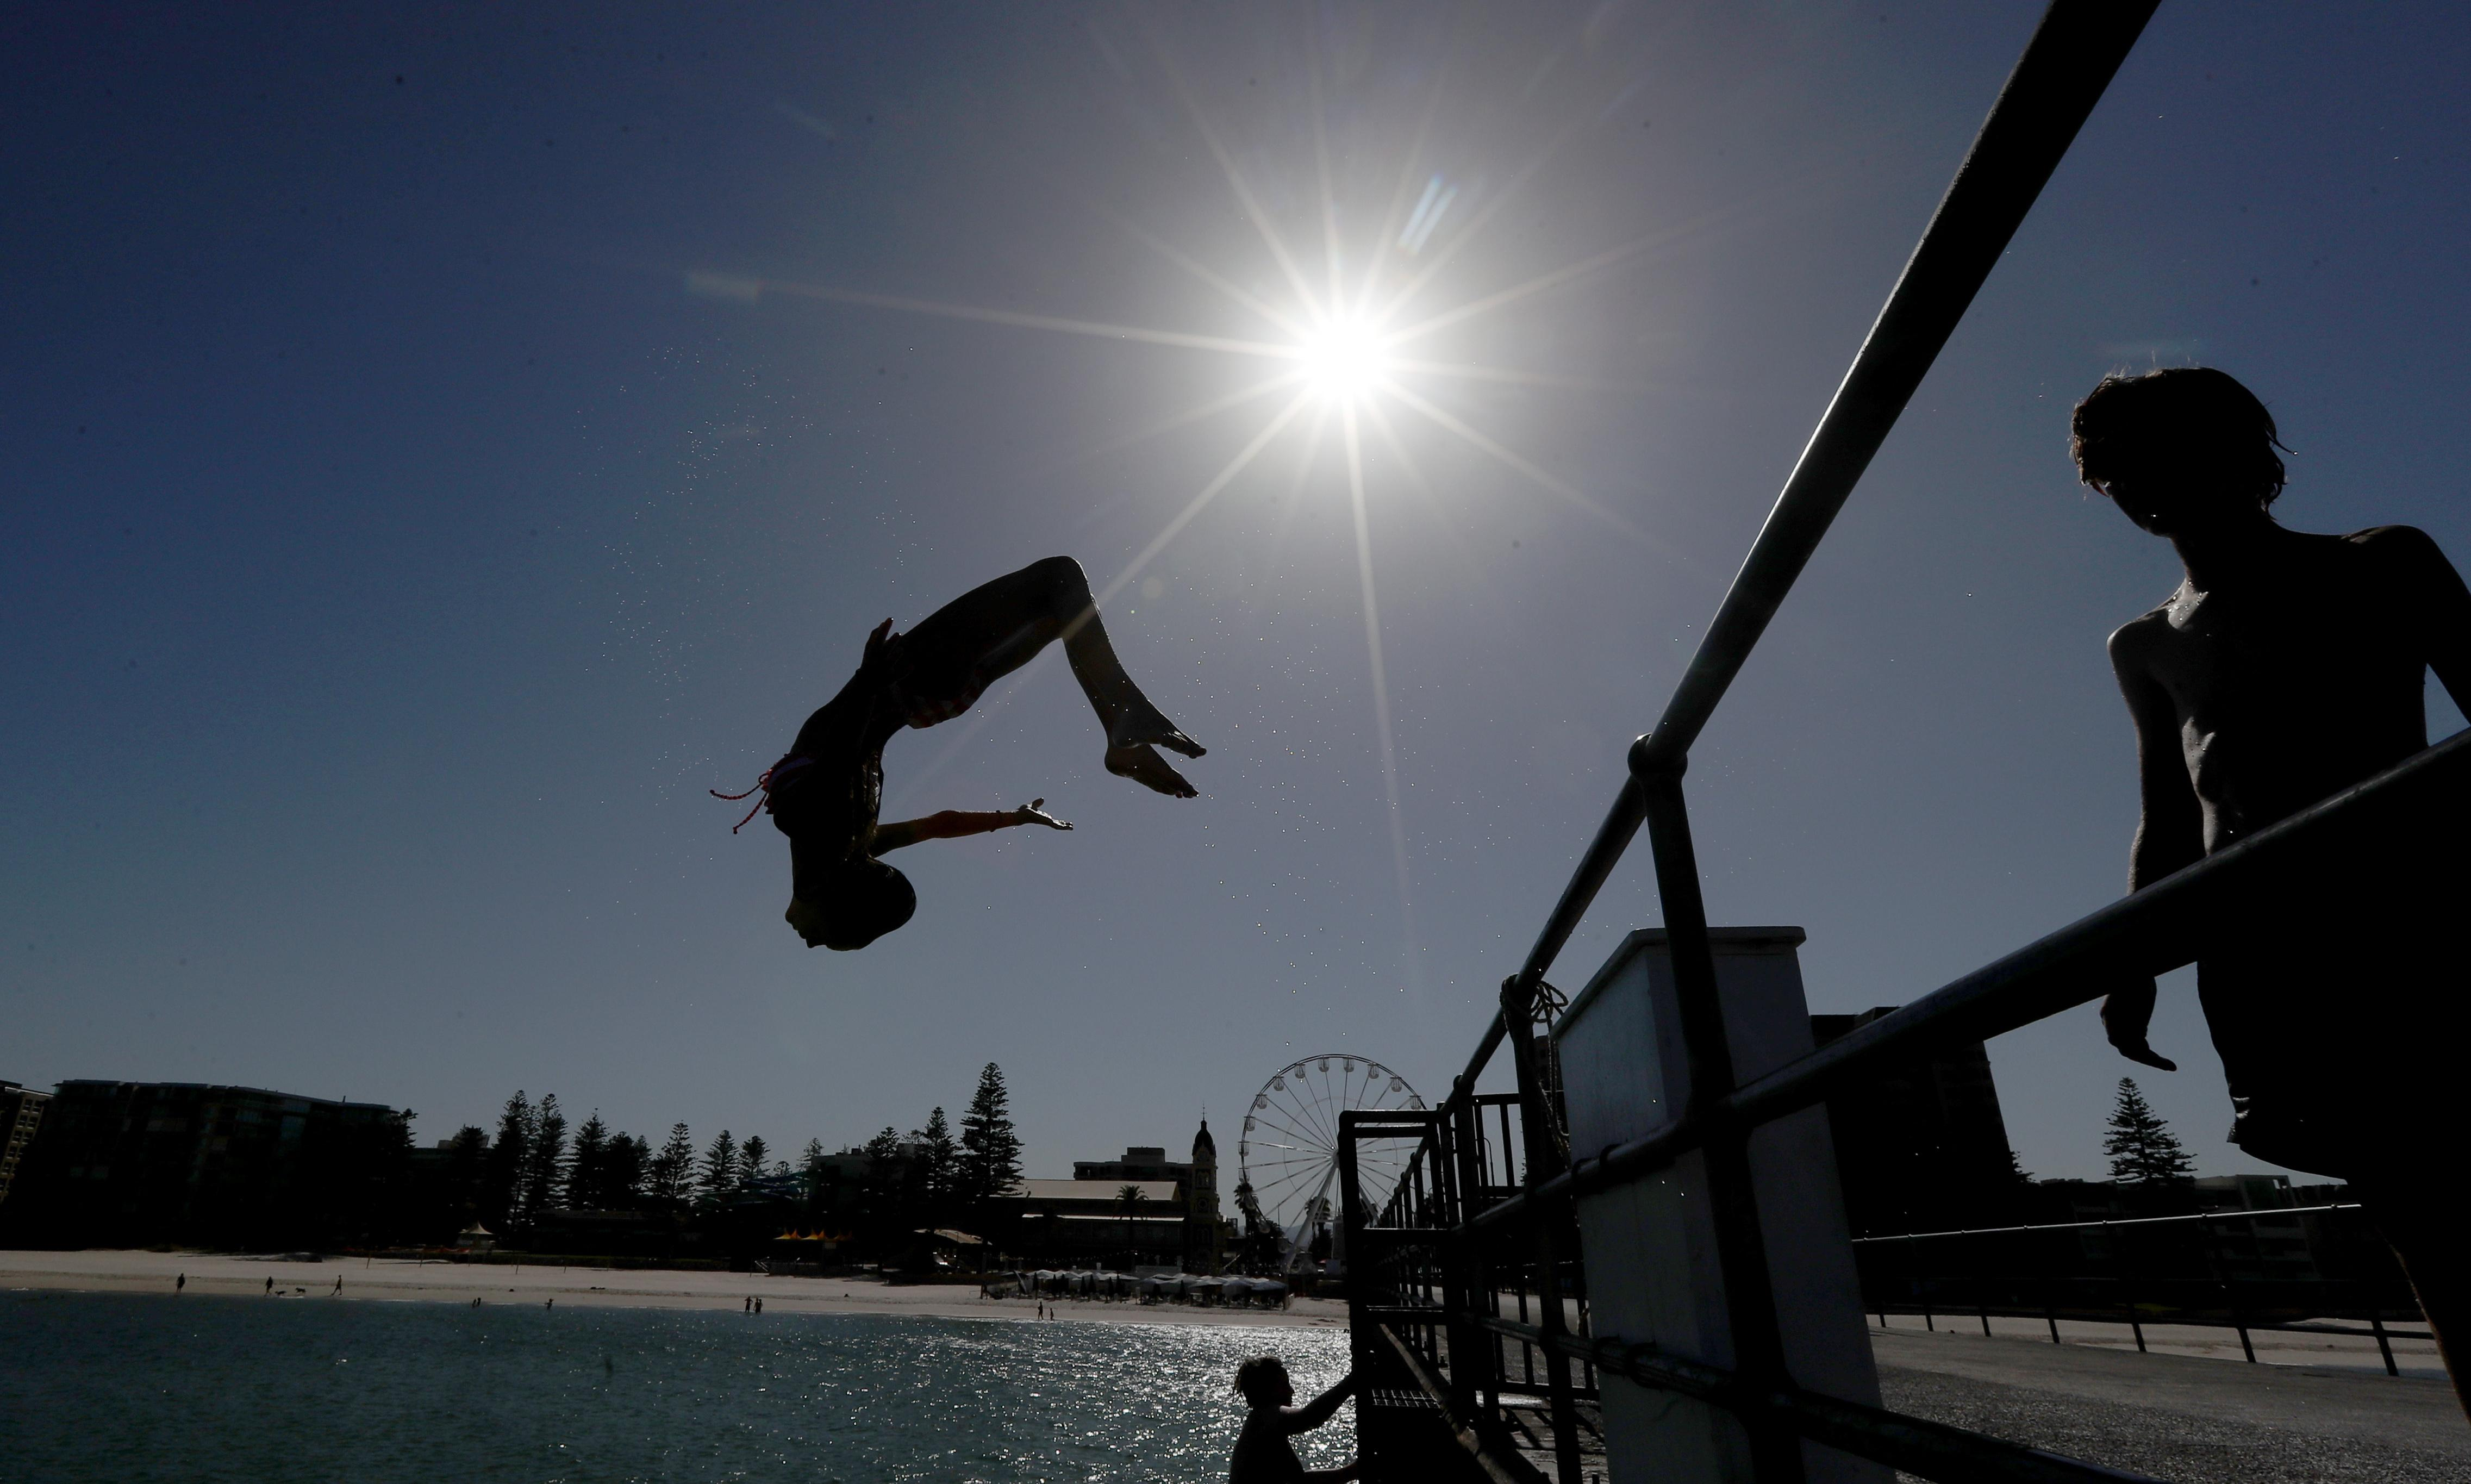 Adelaide breaks its all-time heat record, hitting 46.6C, in extreme Australia heatwave